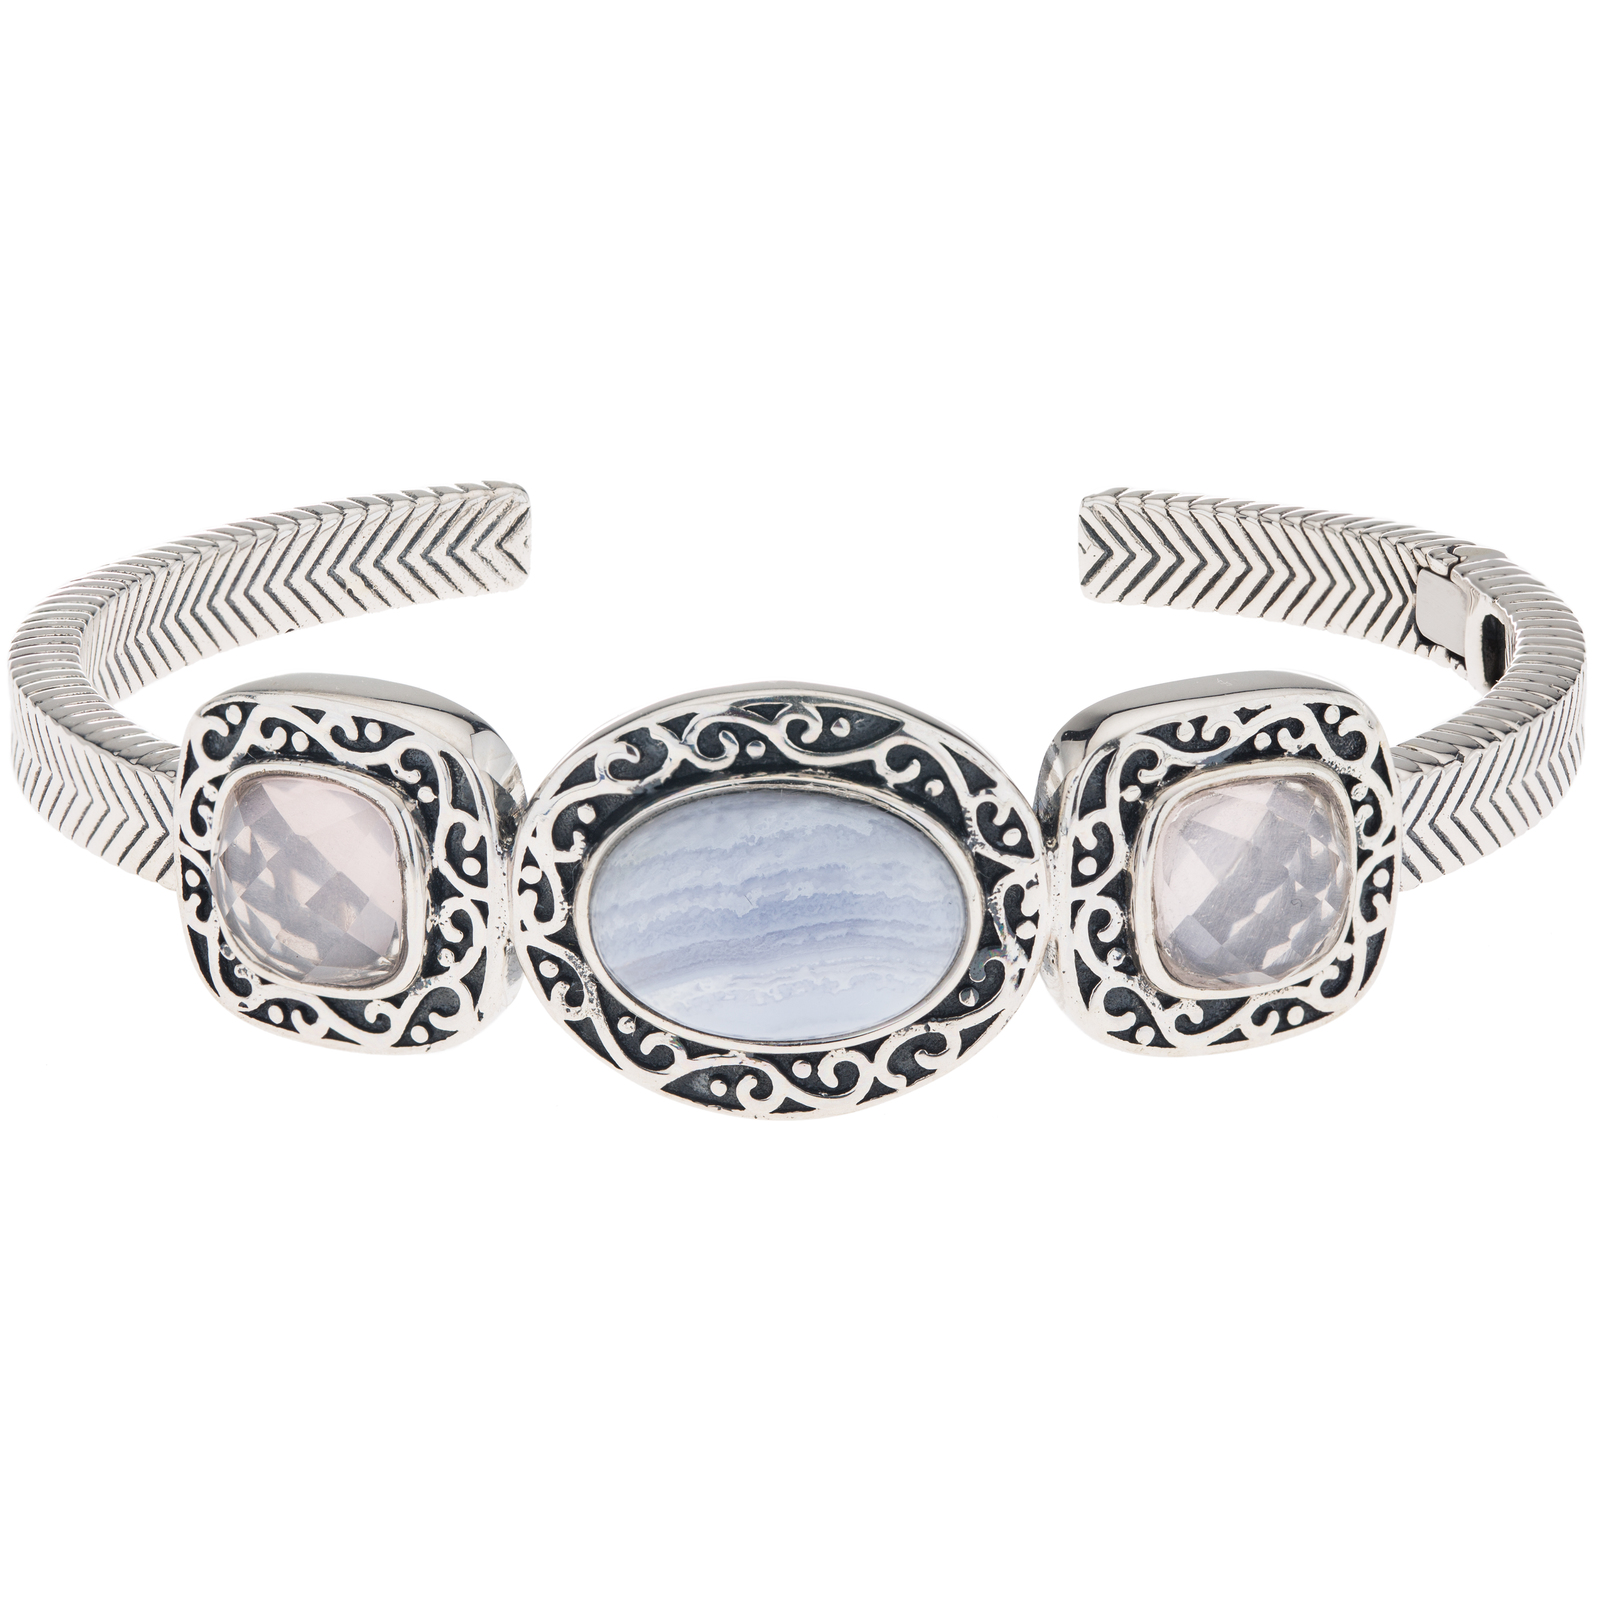 Primary image for Pangea Mines Rose Quartz & Blue Lace Agate Hinged Cuff Bracelet